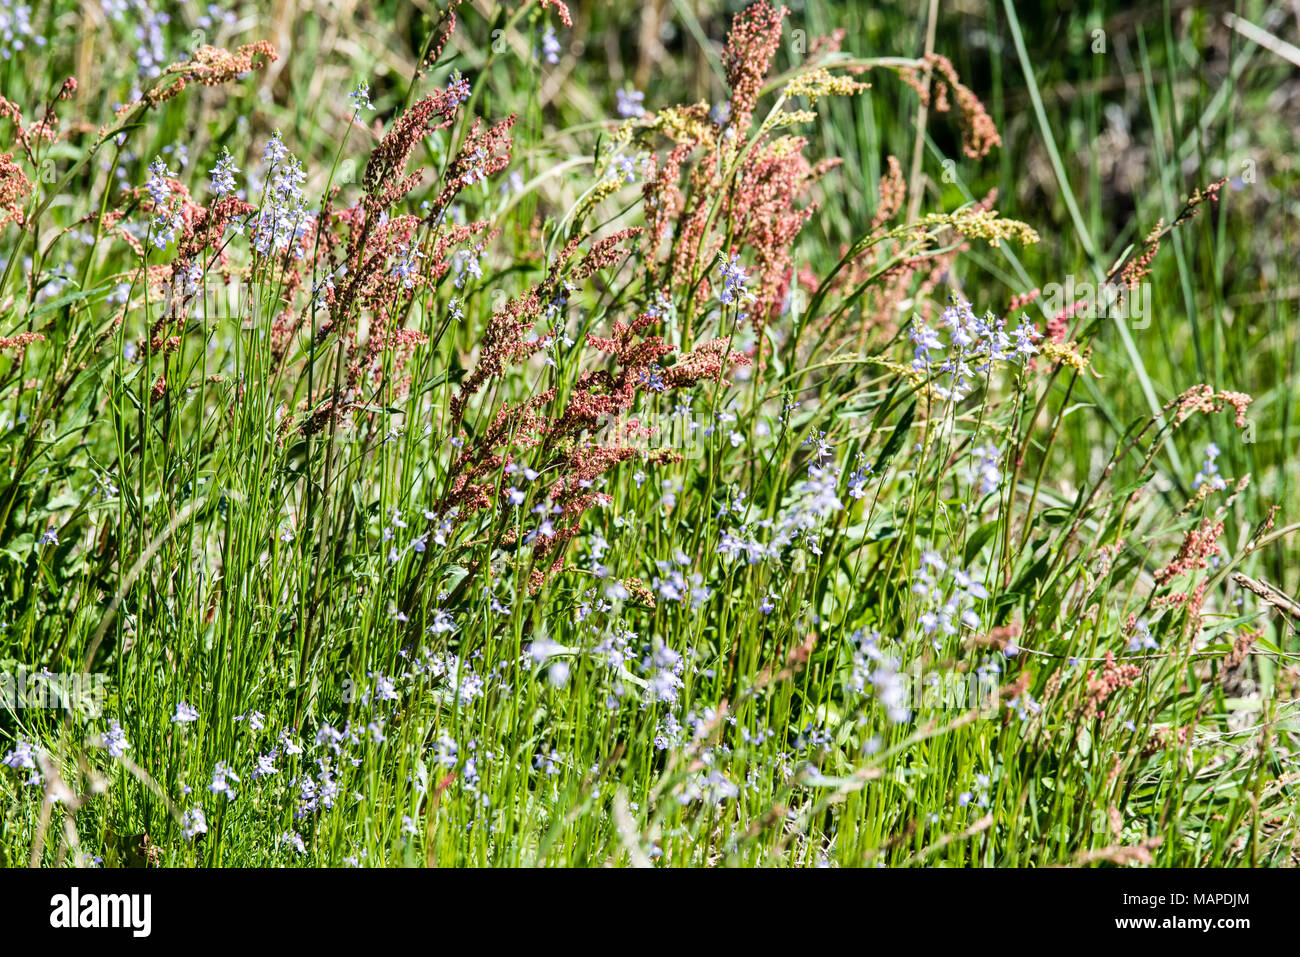 Red and Blue Flowers in Green Grass - Stock Image